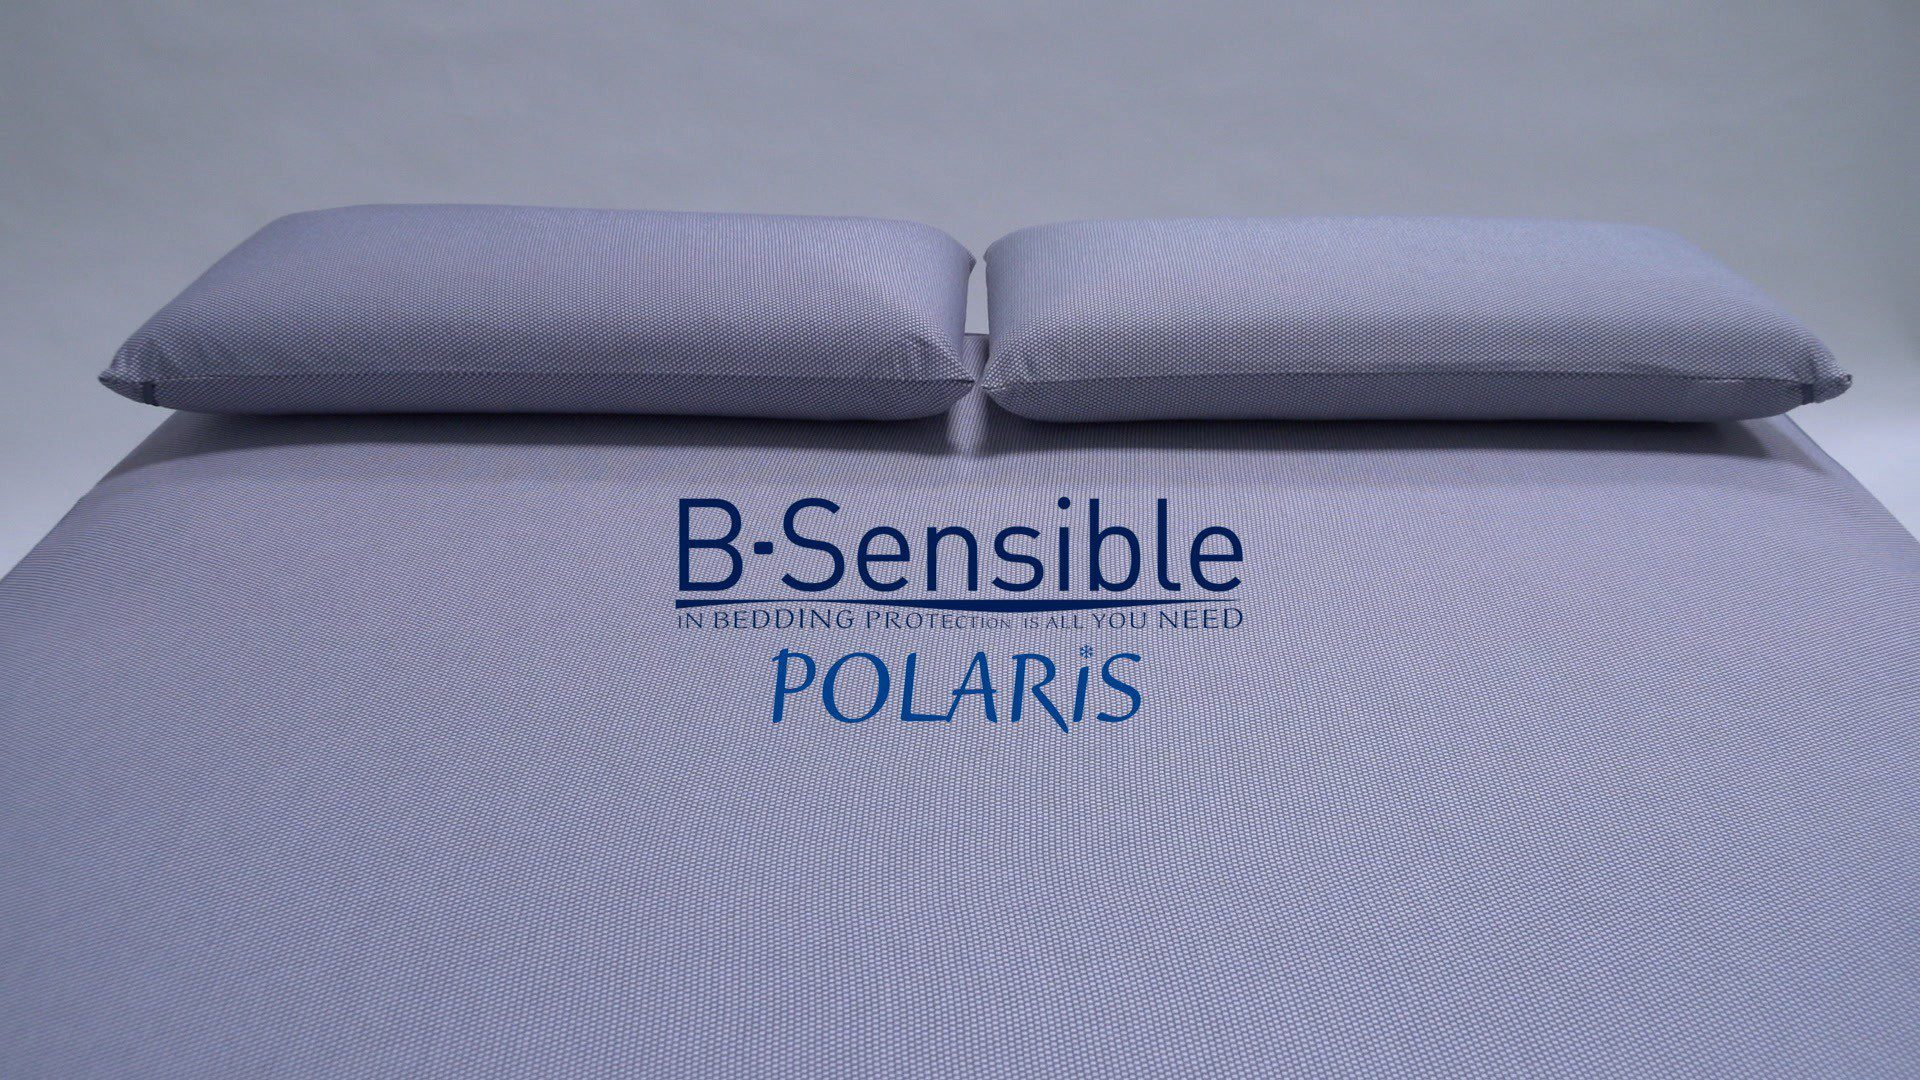 BSensible Polaris, now available in 4 colours